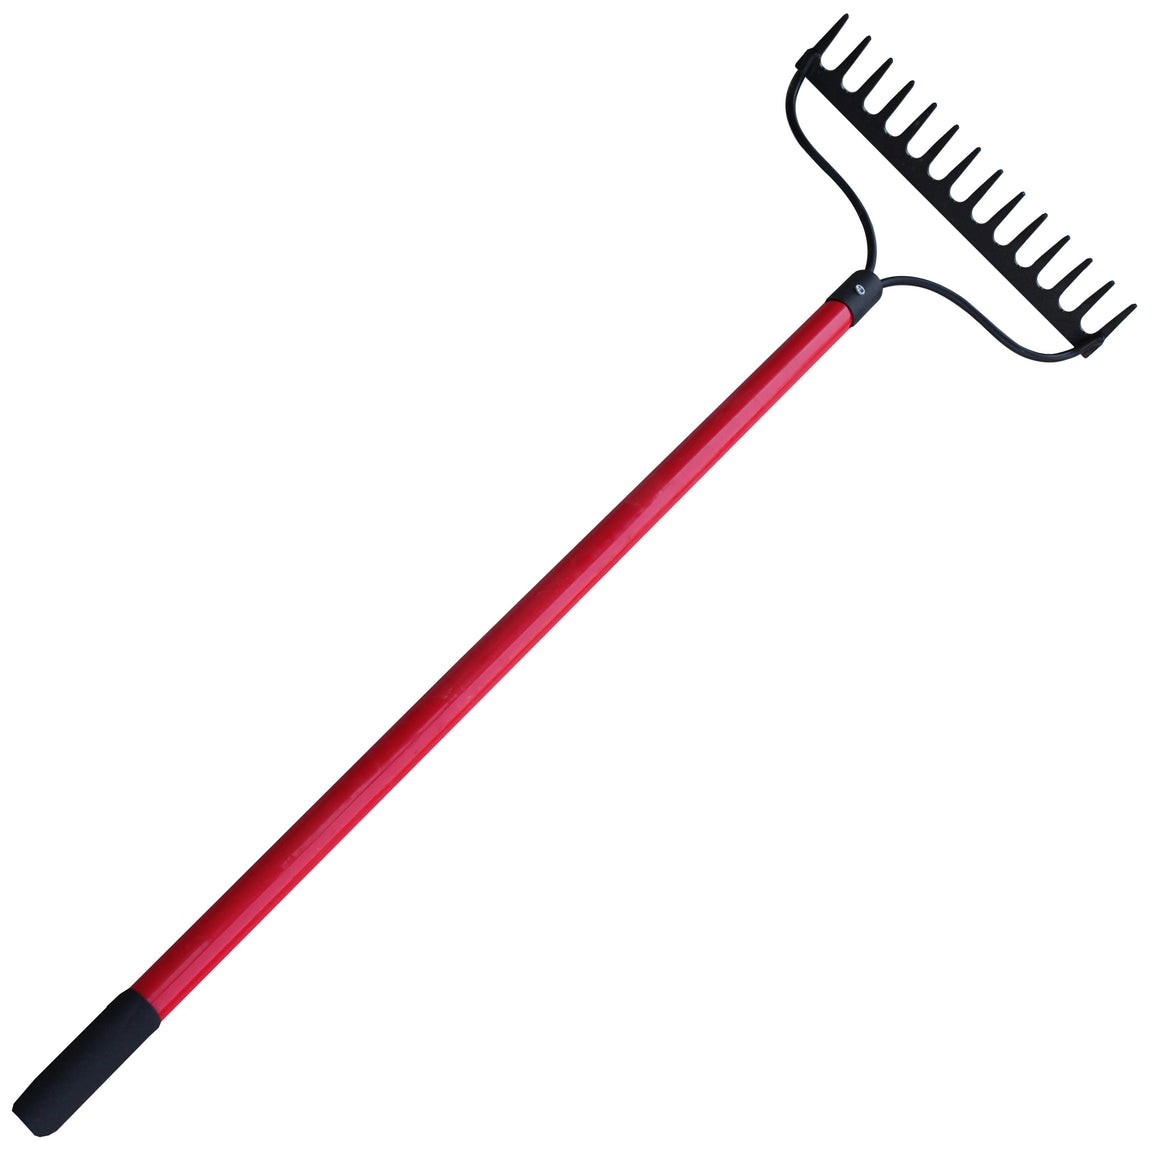 "TABOR TOOLS J205 Level Head Rake With Strong Long 54"" Fiberglass Handle, 14-Tine"